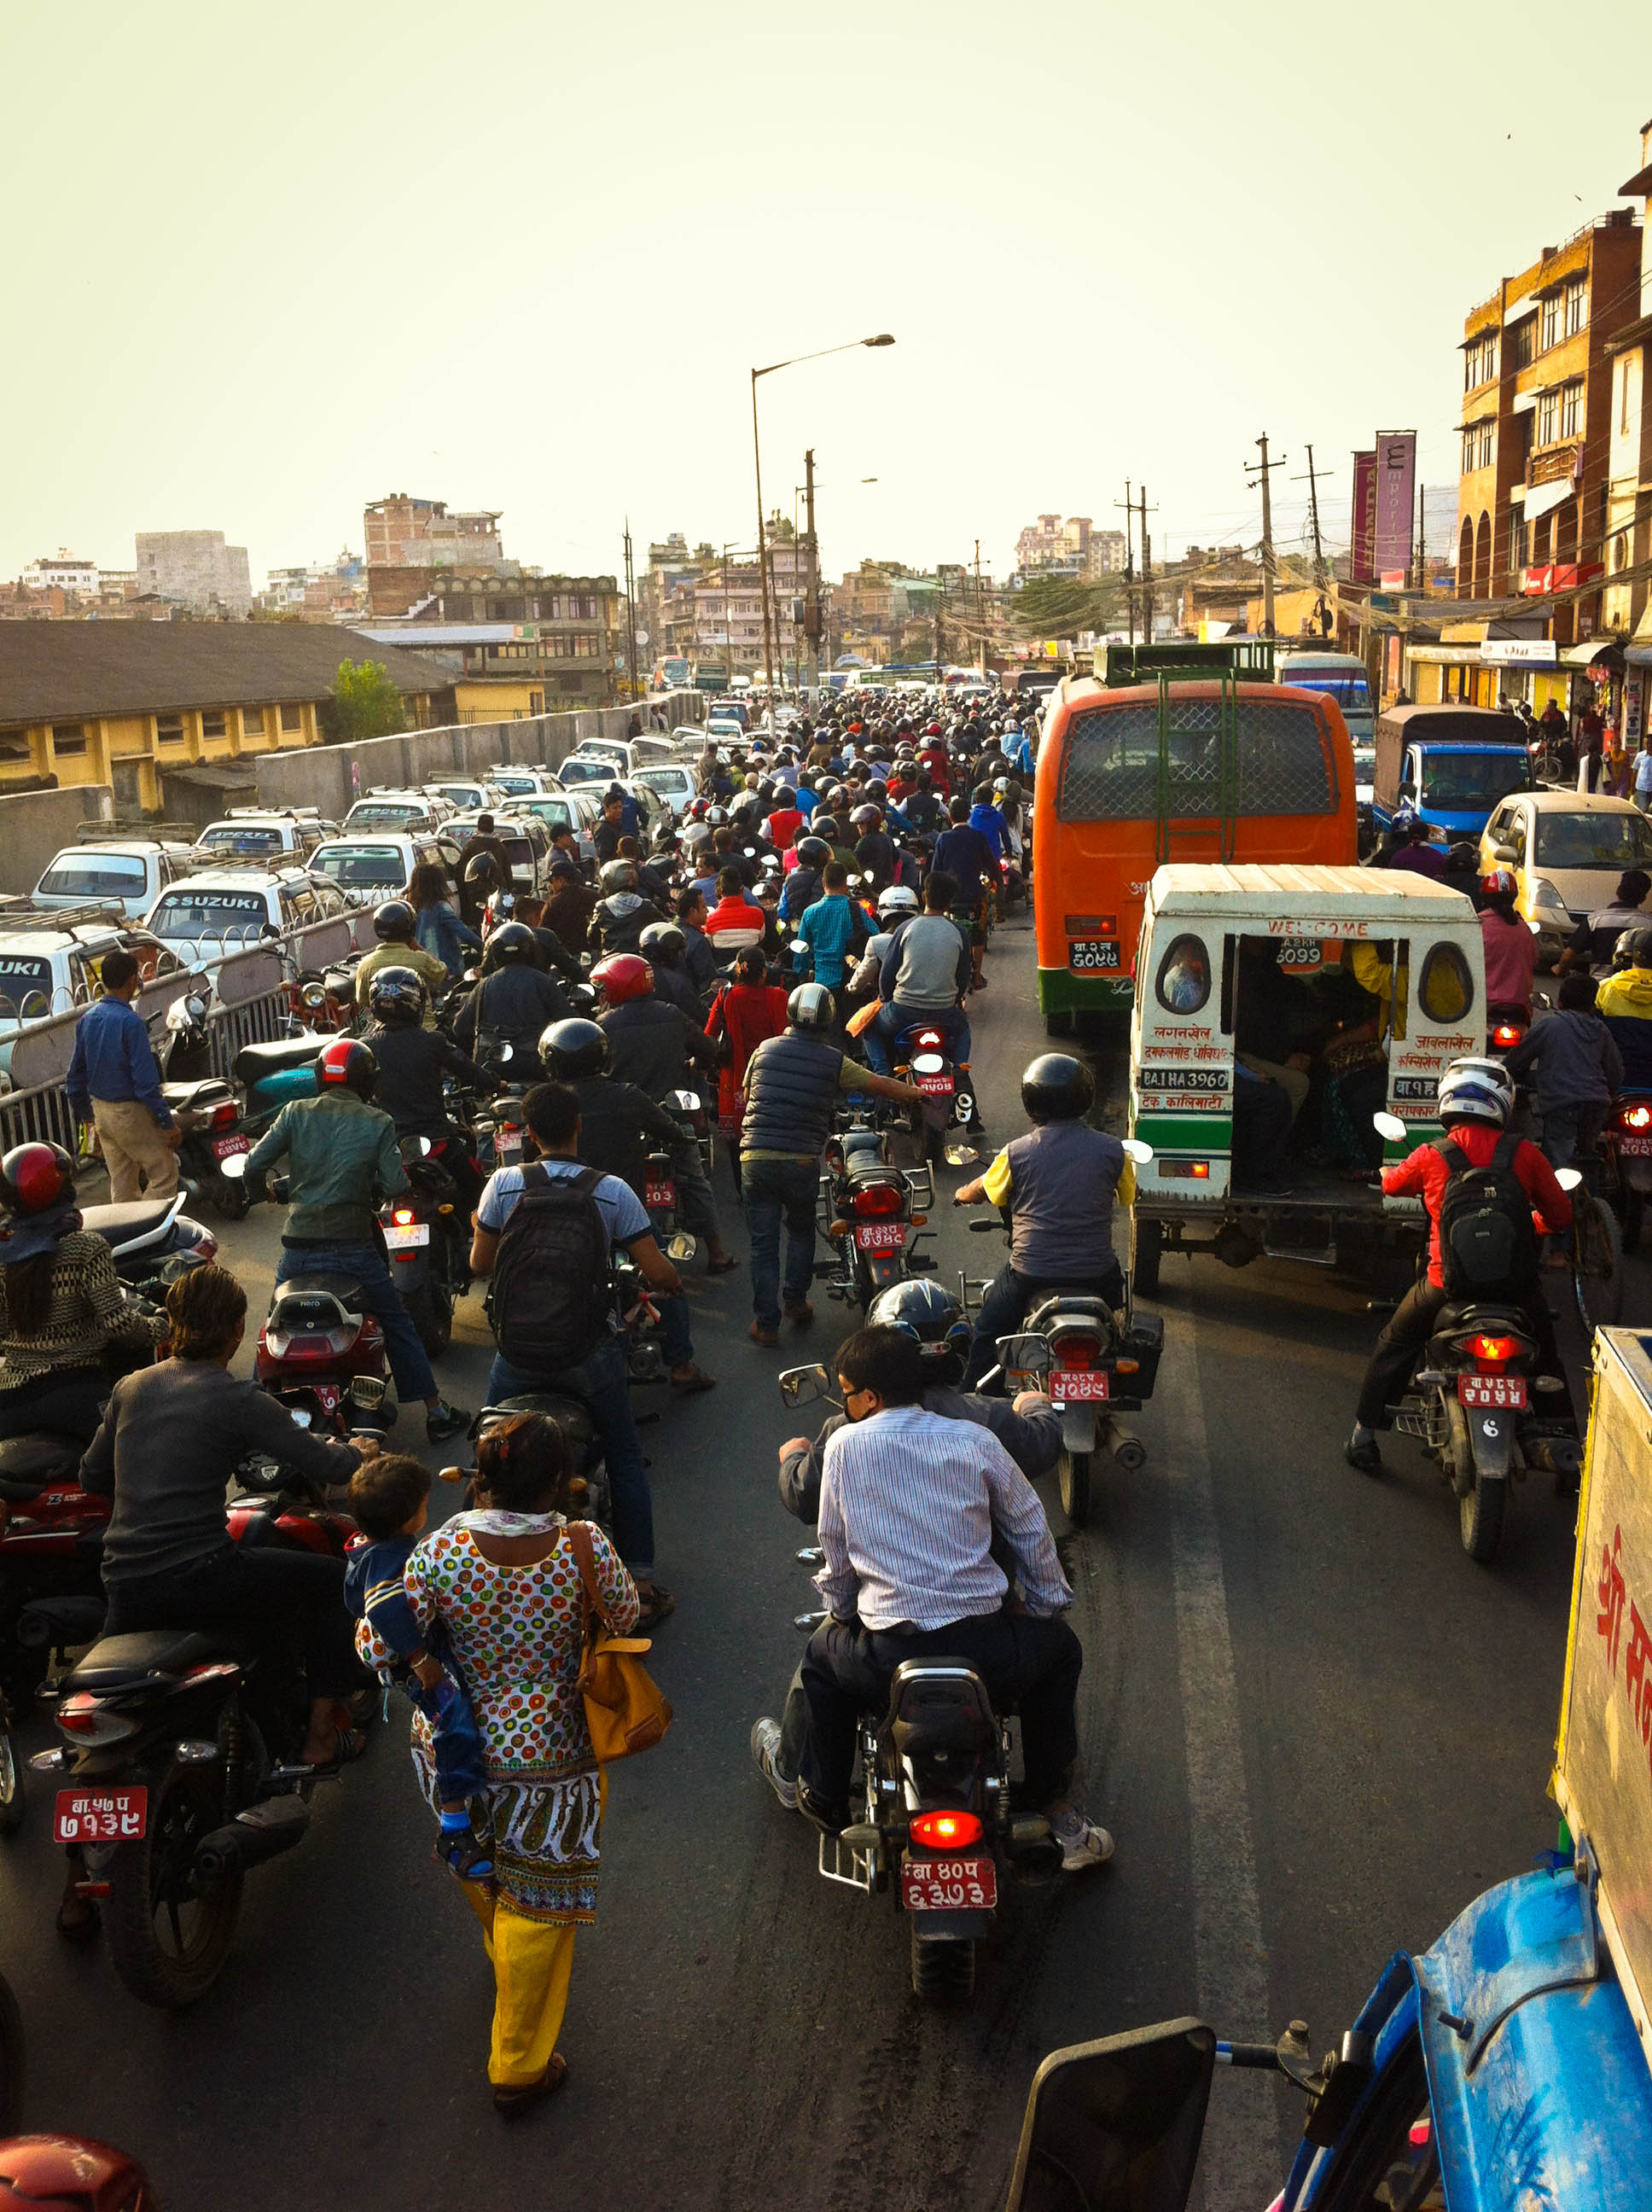 View of the cue for petrol at a station in Teku, Kathmandu. Our delivery truck had to wade through the waves of traffic for hours to finally move onto the highway to Makwanpur.